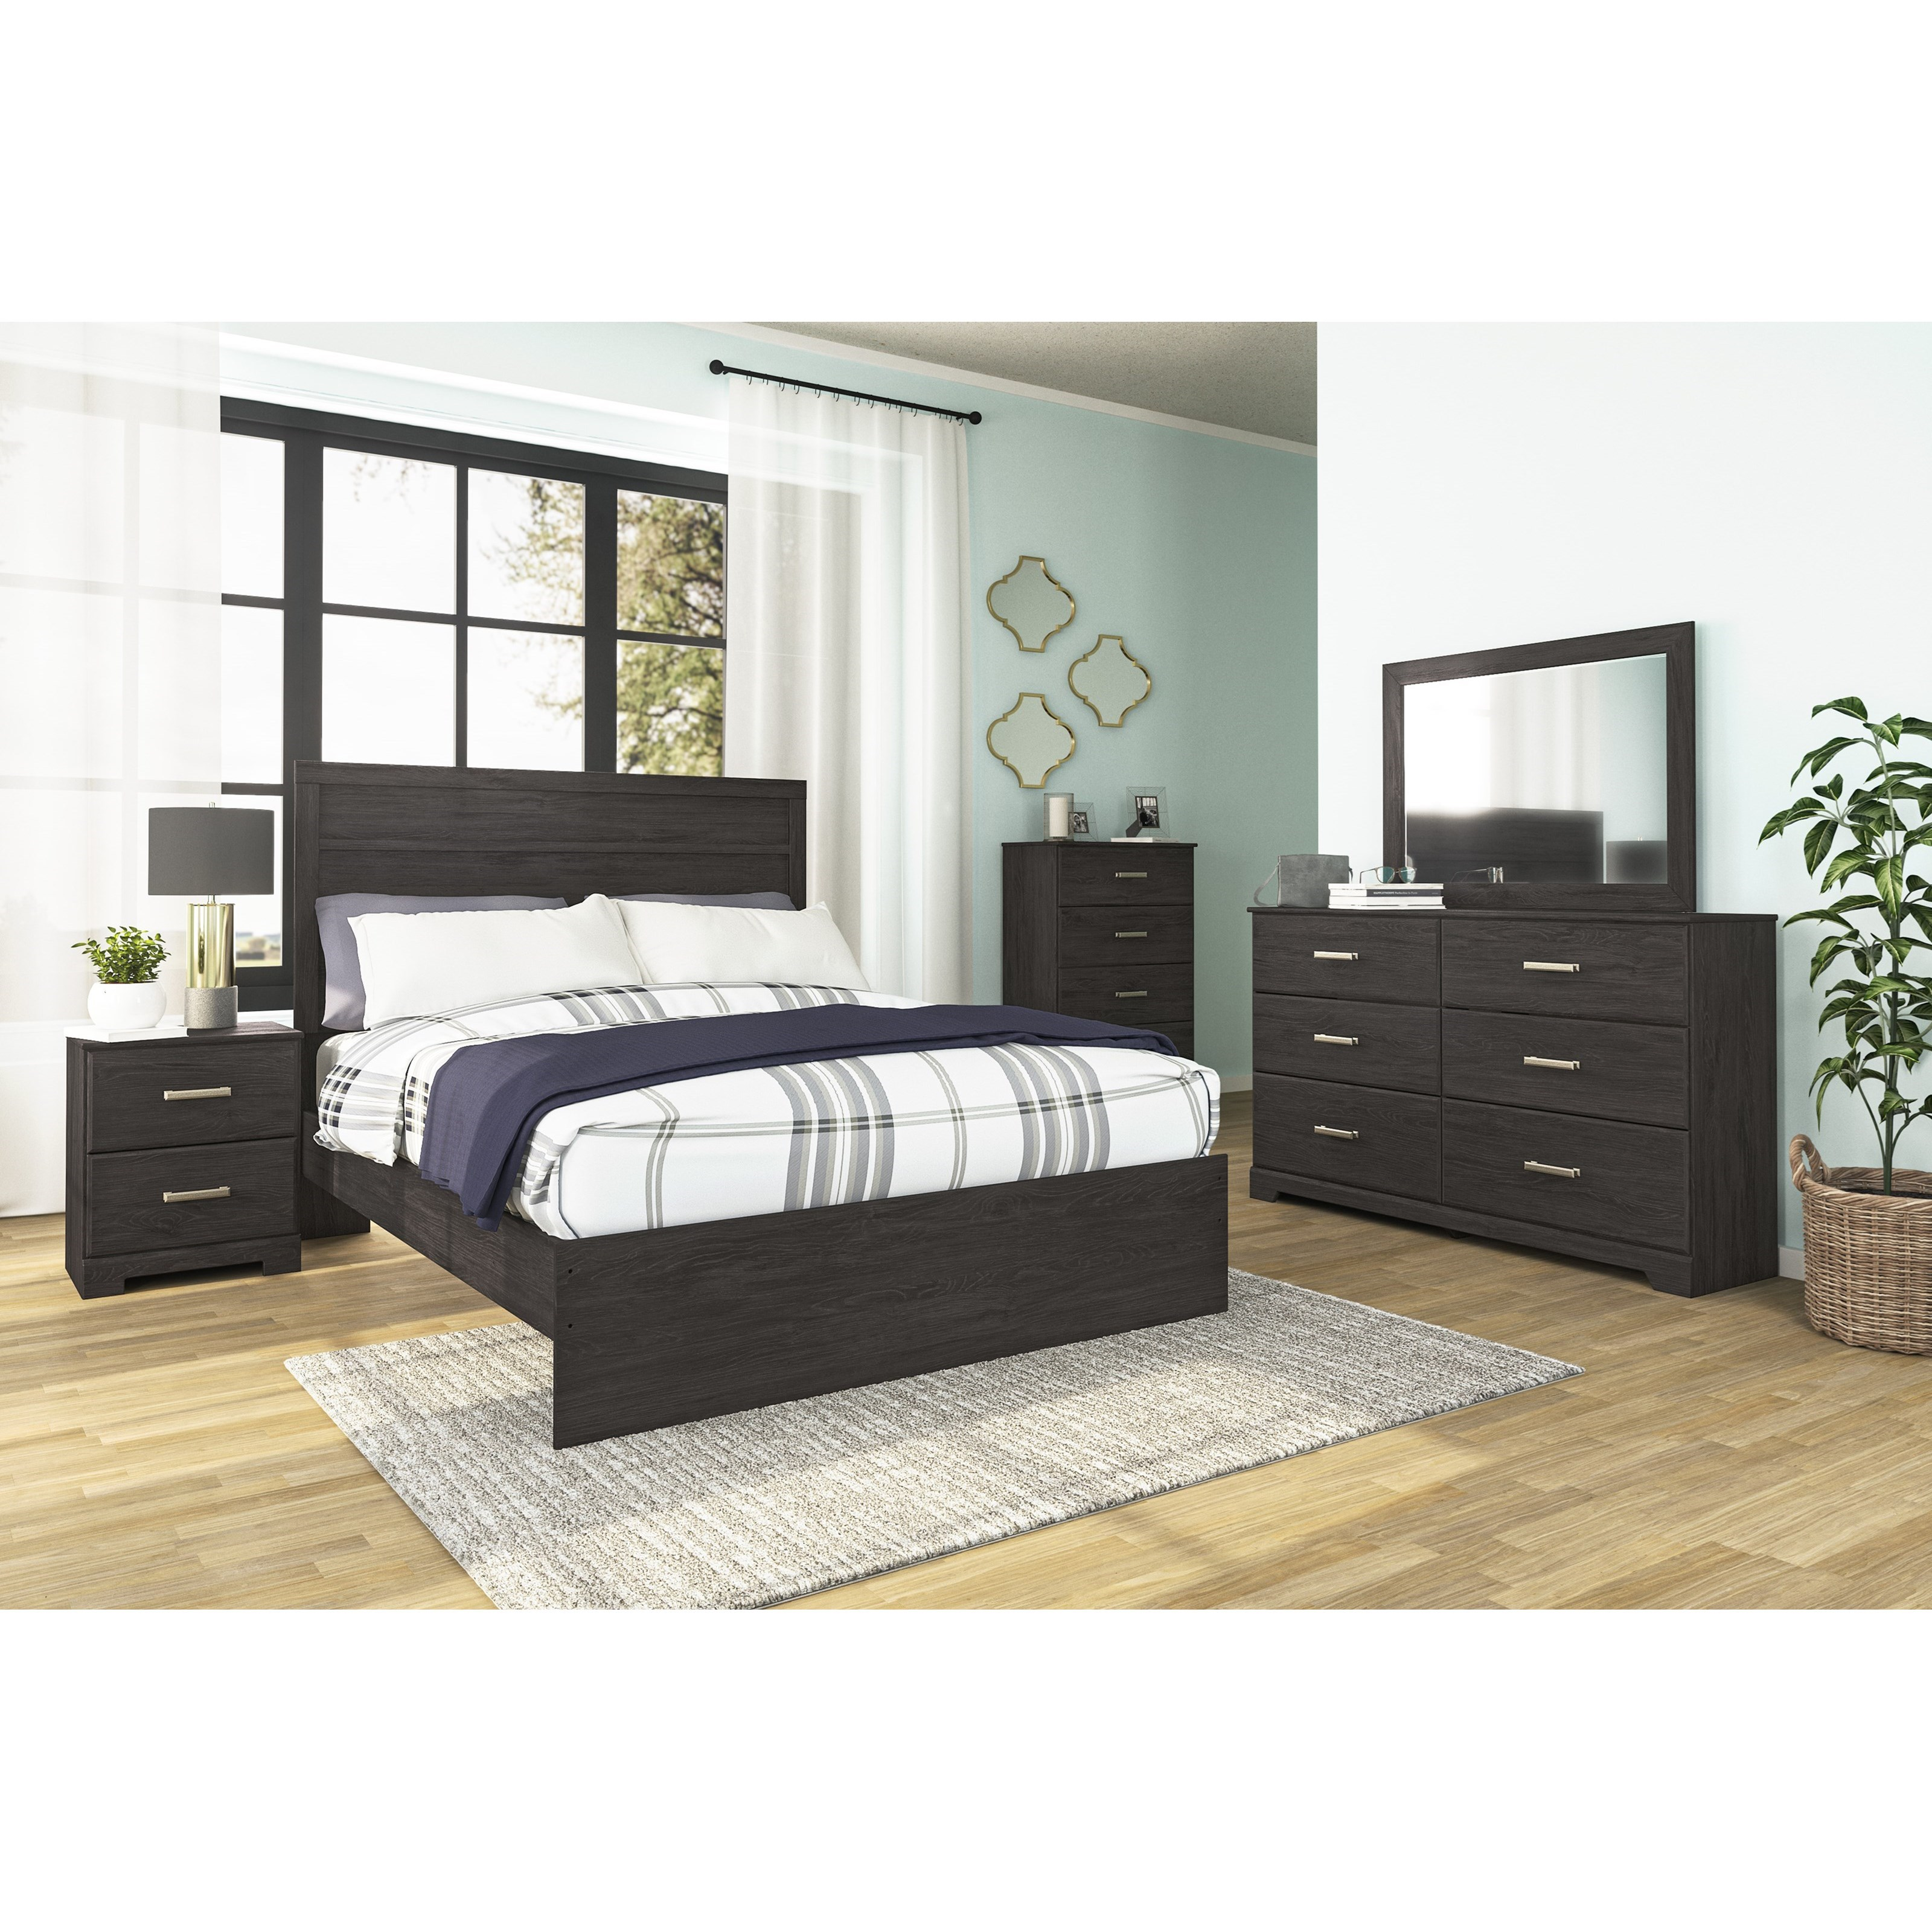 Belachime Queen Bedroom Group by StyleLine at EFO Furniture Outlet